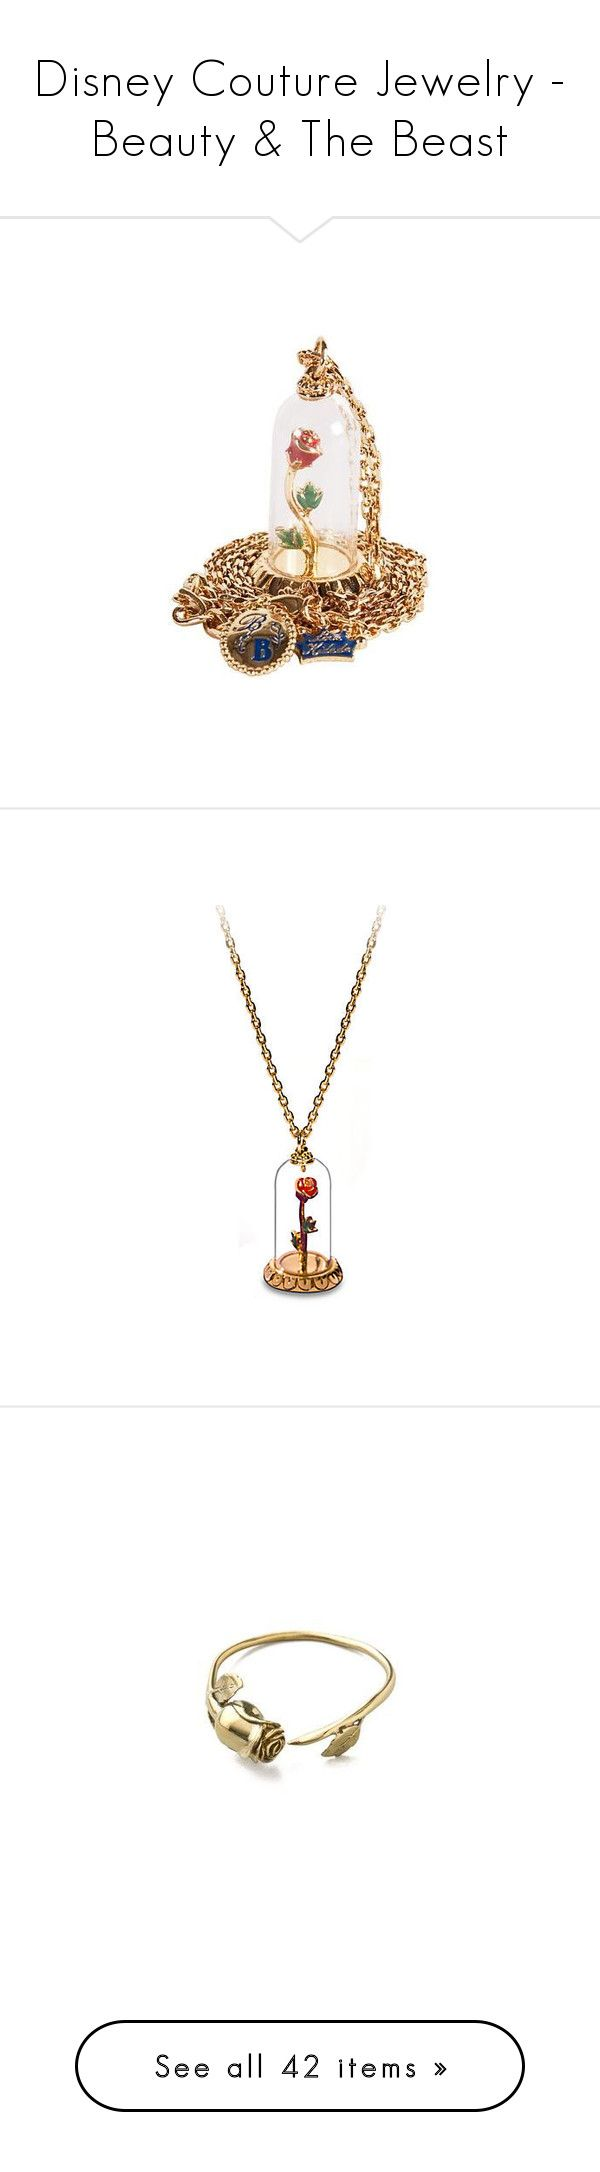 """""""Disney Couture Jewelry - Beauty & The Beast"""" by atomik-concia ❤ liked on Polyvore featuring disney, jewelry, necklaces, accessories, jewels, rose jewelry, disney couture jewelry, rose necklace, disney couture and disney couture necklace"""